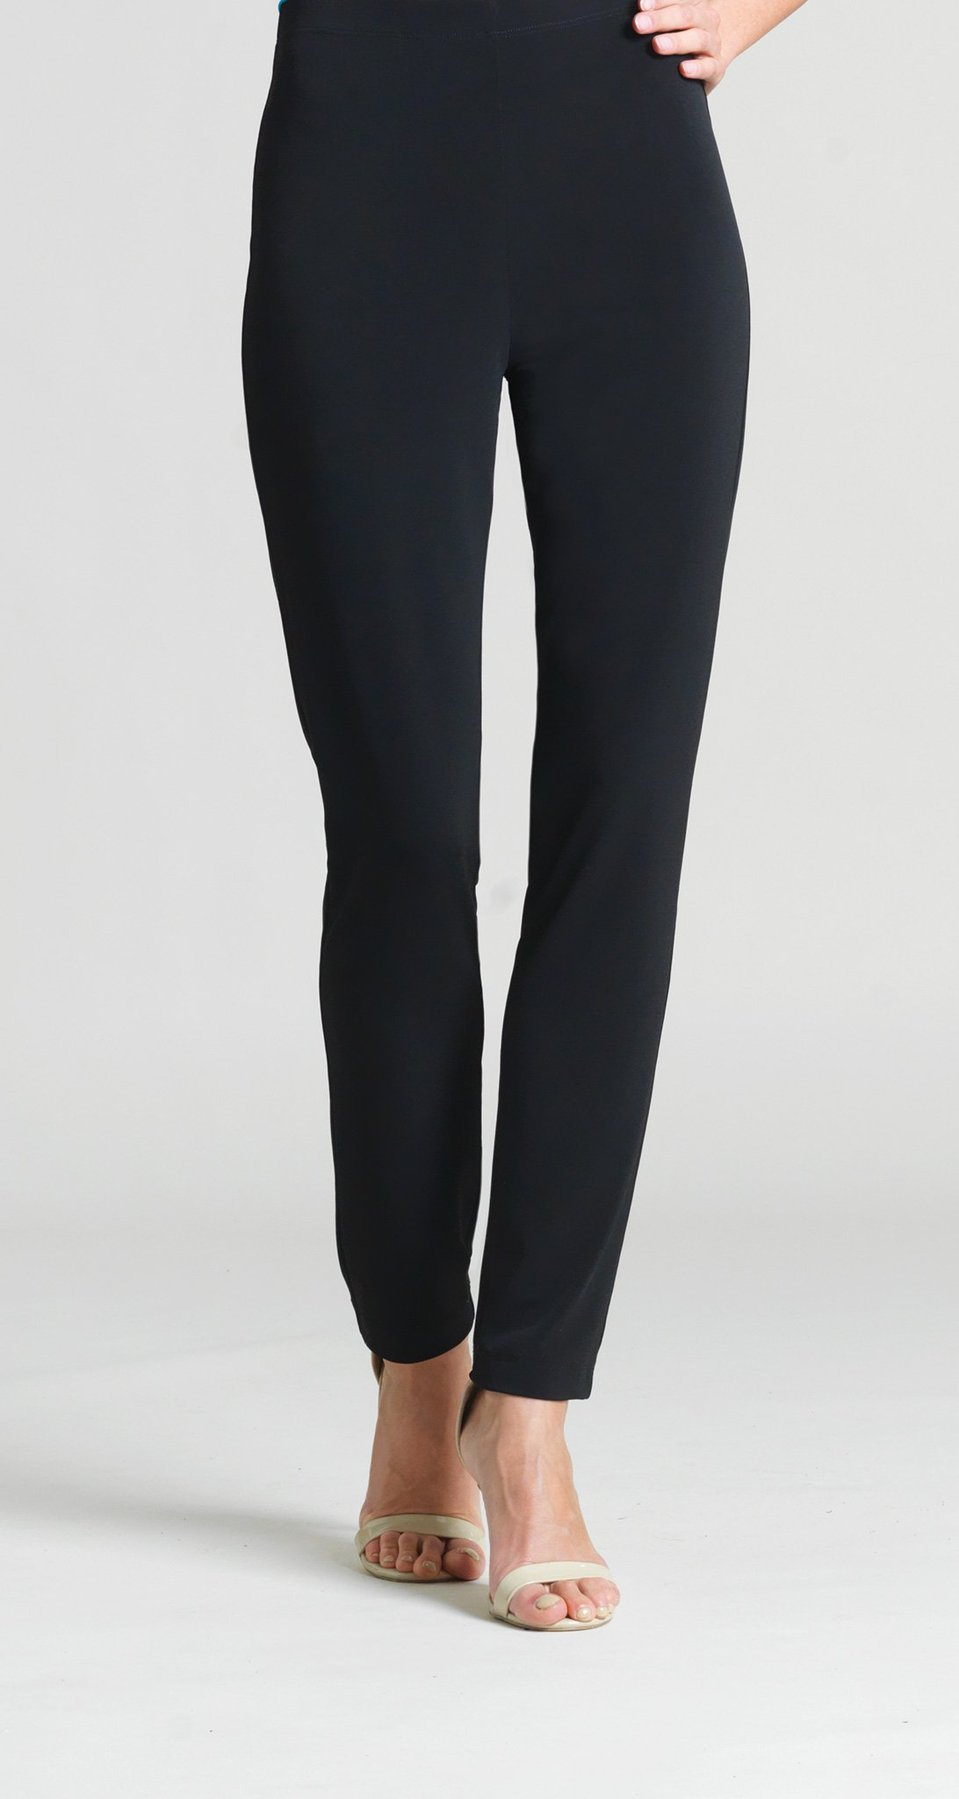 Knit Straight Leg Pant Black